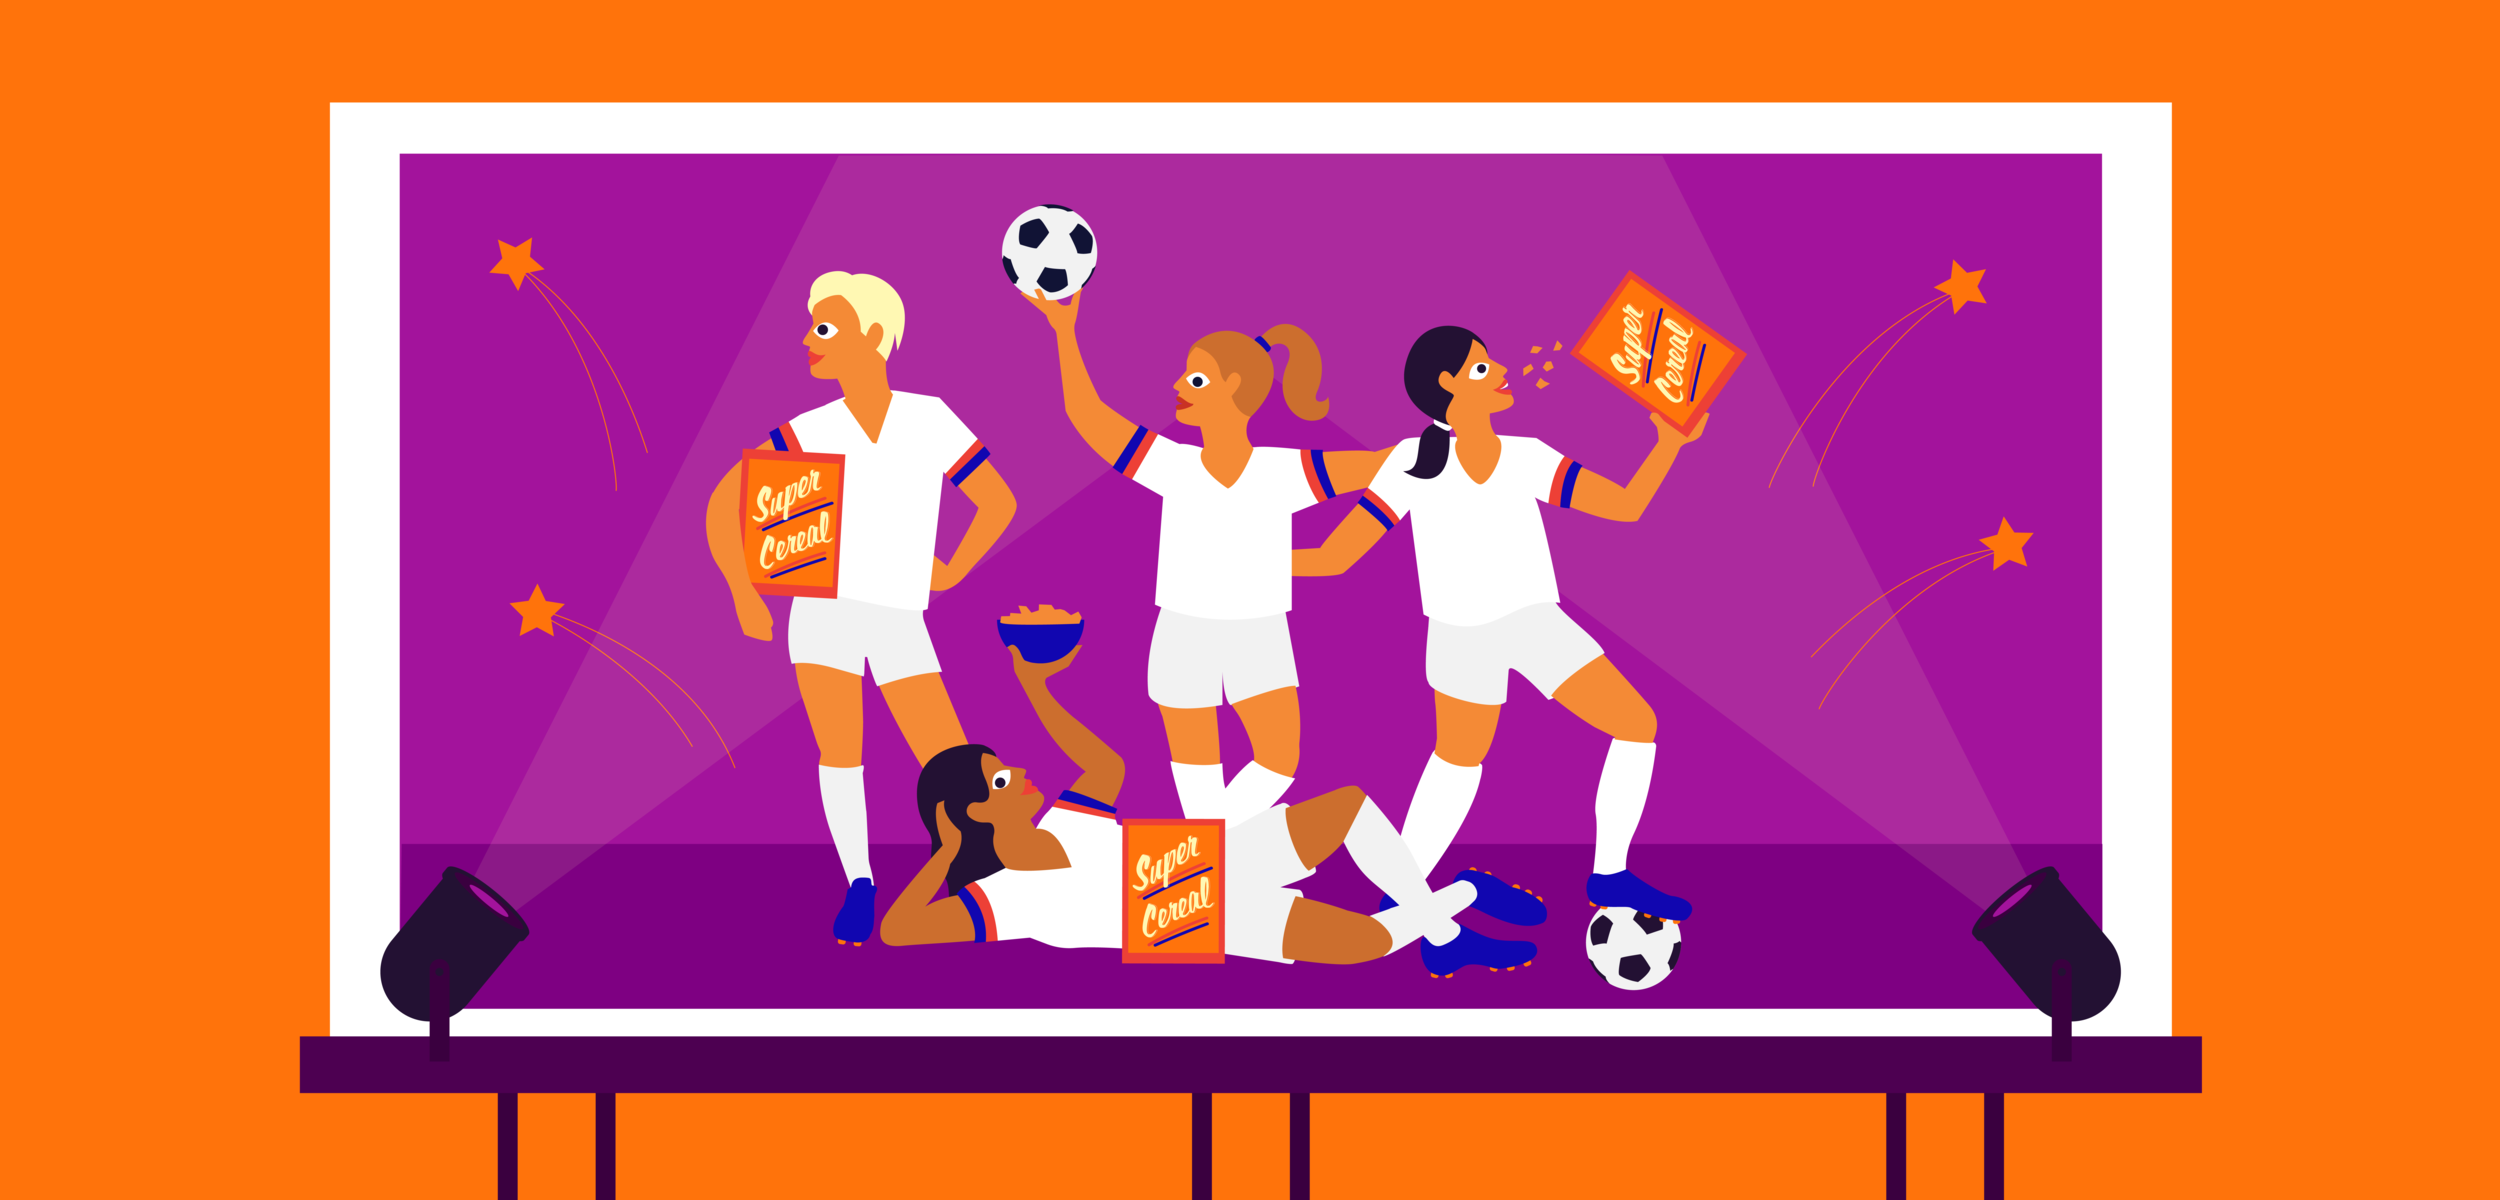 WNW_USWNT_Illustration_AJ_190910_Final-01.png